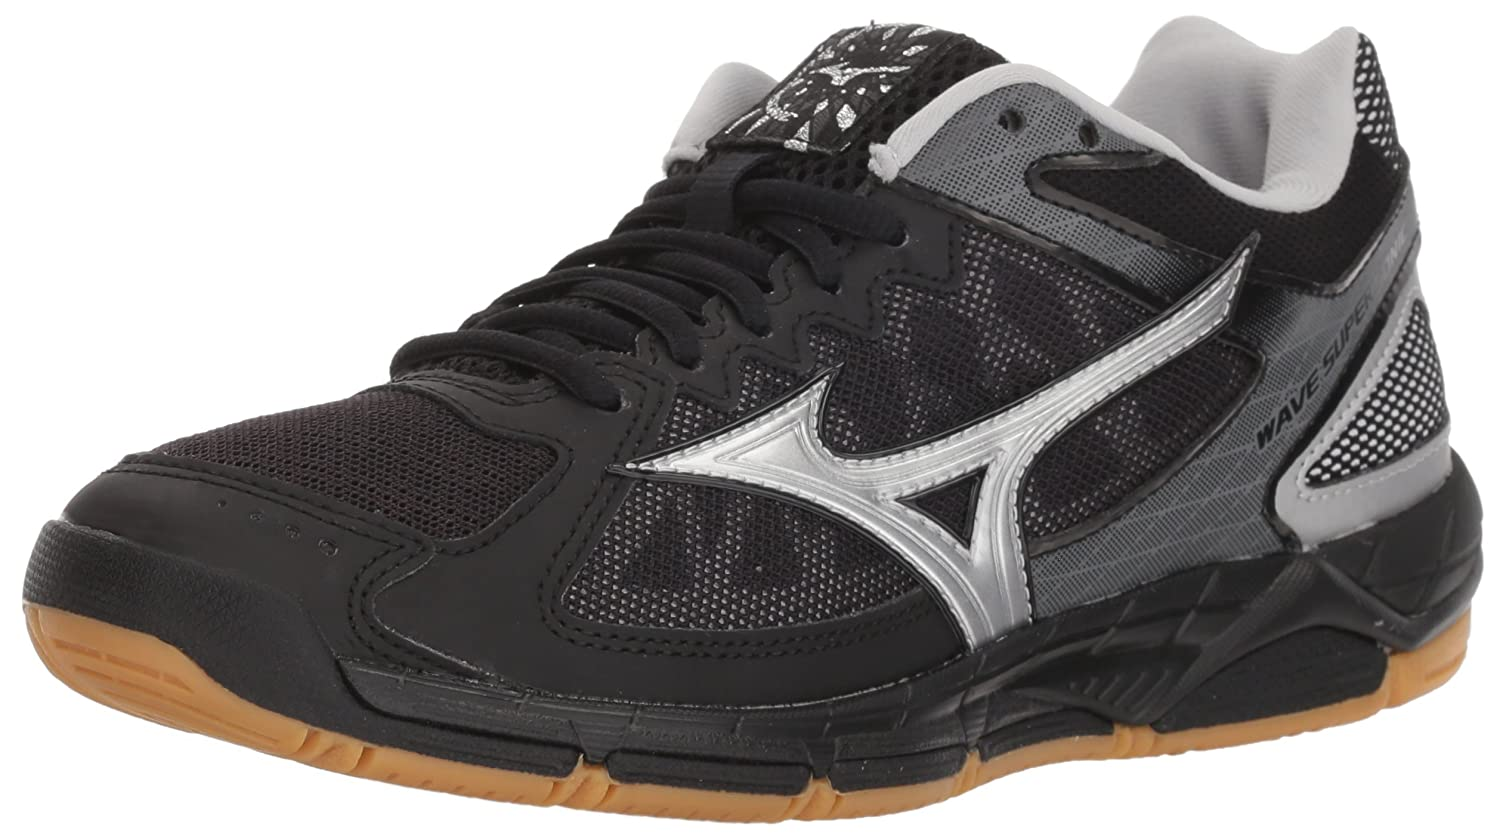 Mizuno Women's Wave Supersonic Volleyball Shoe B07826BR9B Women's 13 B US|Black/Silver